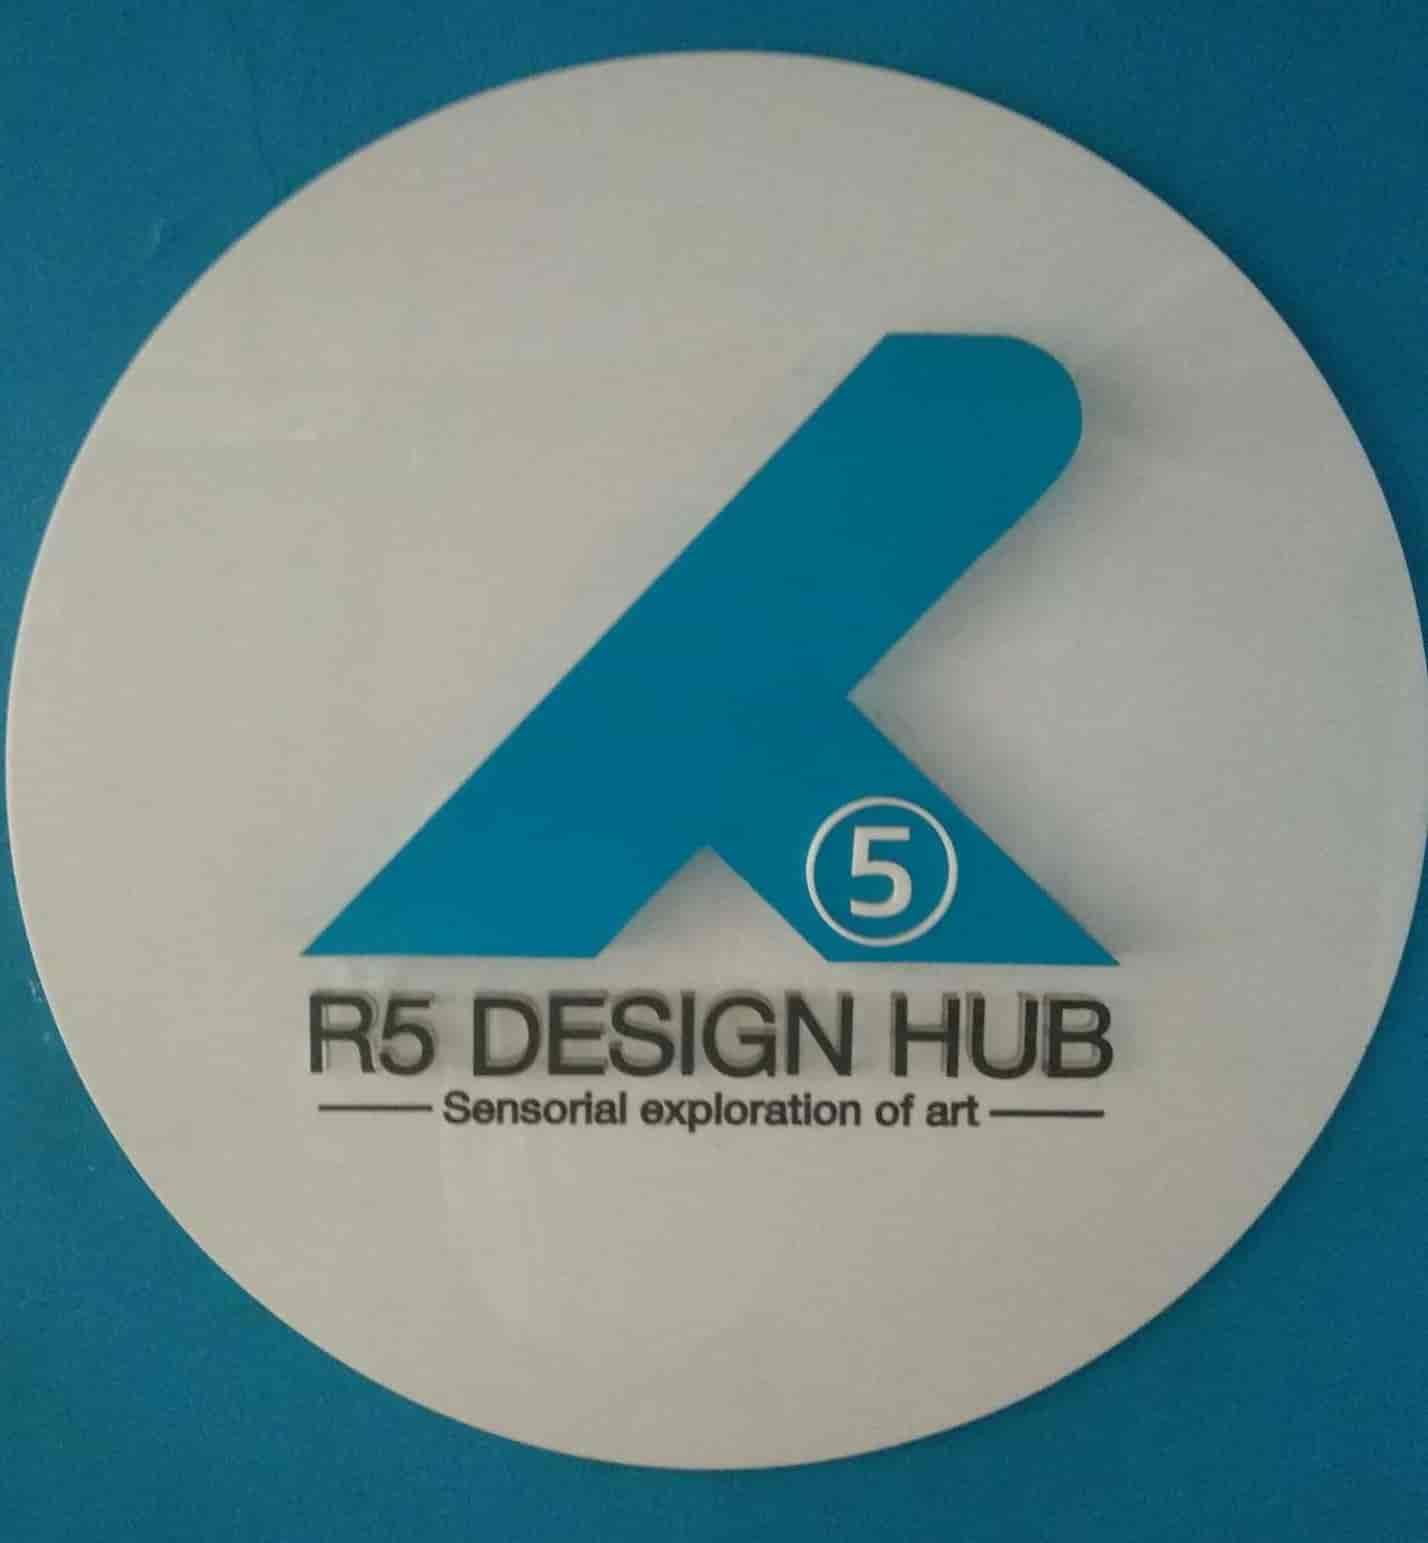 - R 5 Design Hub Images, Borivali West, Mumbai - Social Media Marketing Agencies For Coffee Shops